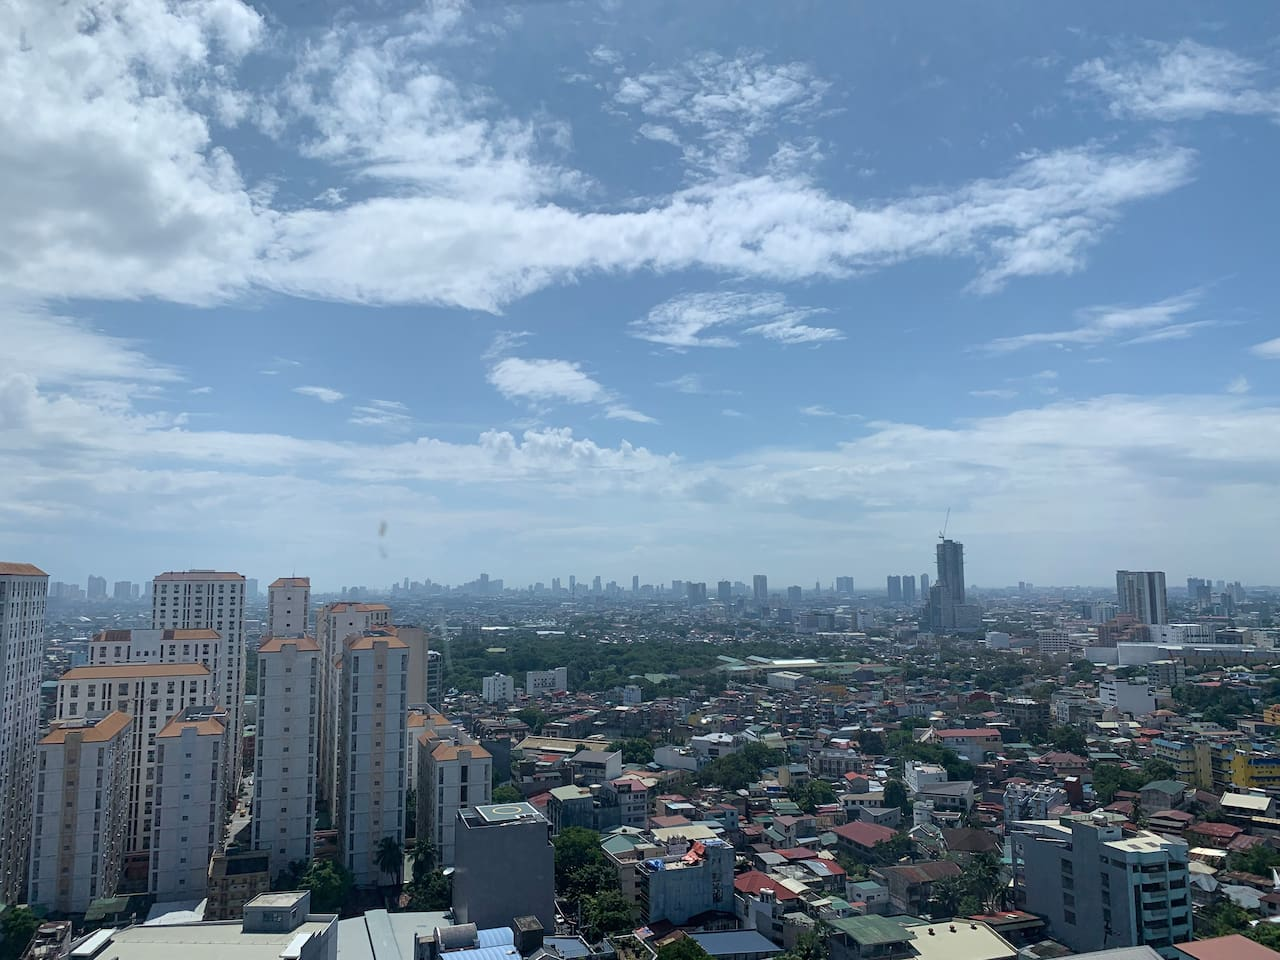 The studio affords a magnificent daylight view of Mandaluyong, Makati and Manila skyline.  Know the traffic situation also, real-time, in EDSA.